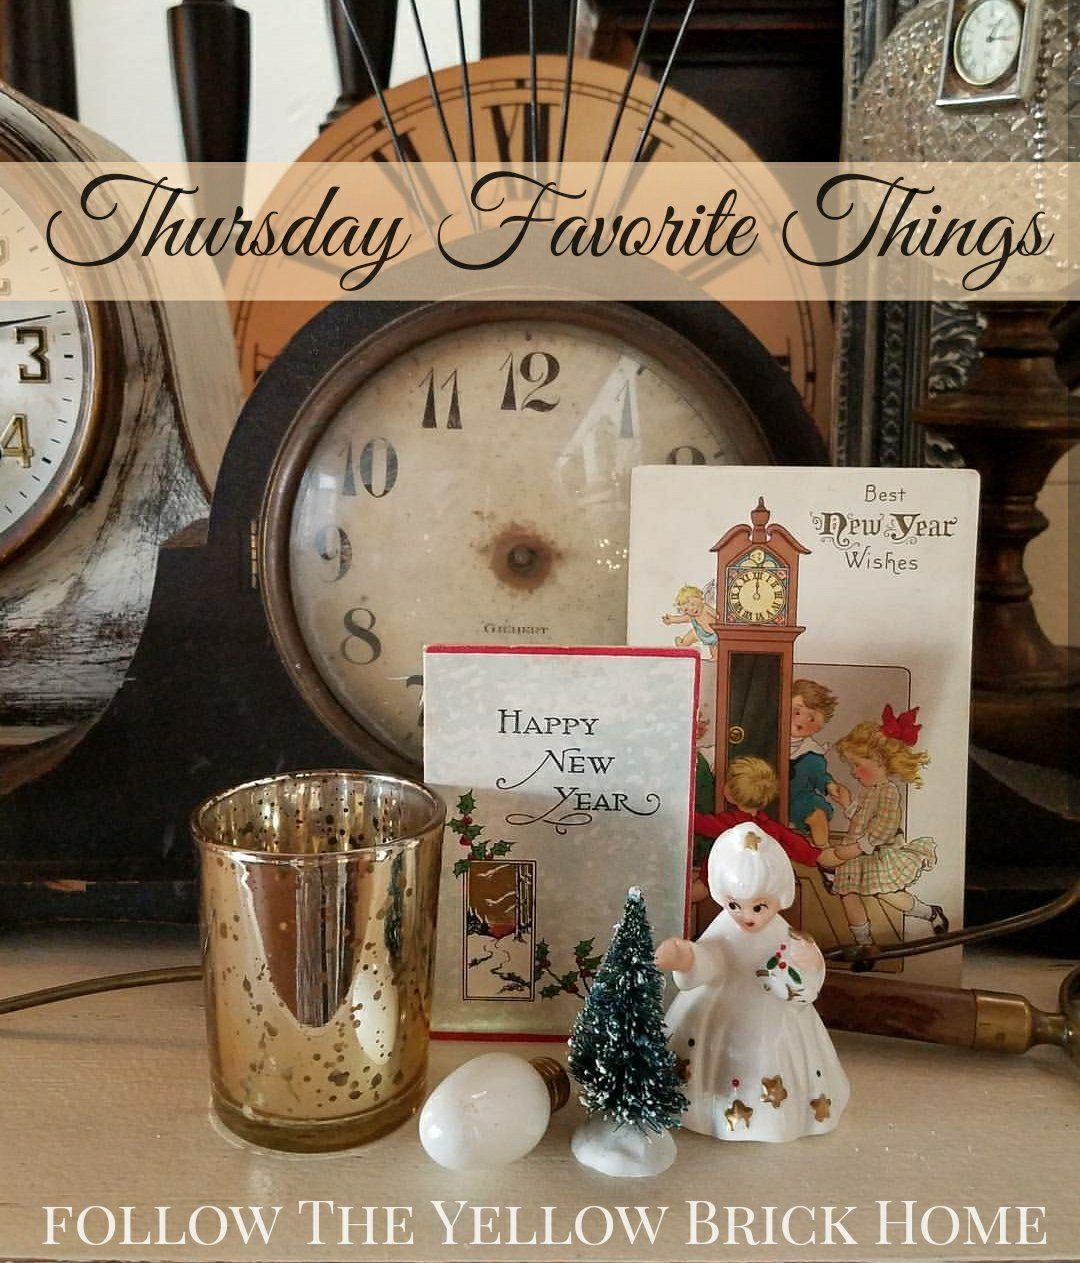 Thursday Favorite Things Blogger Link Party